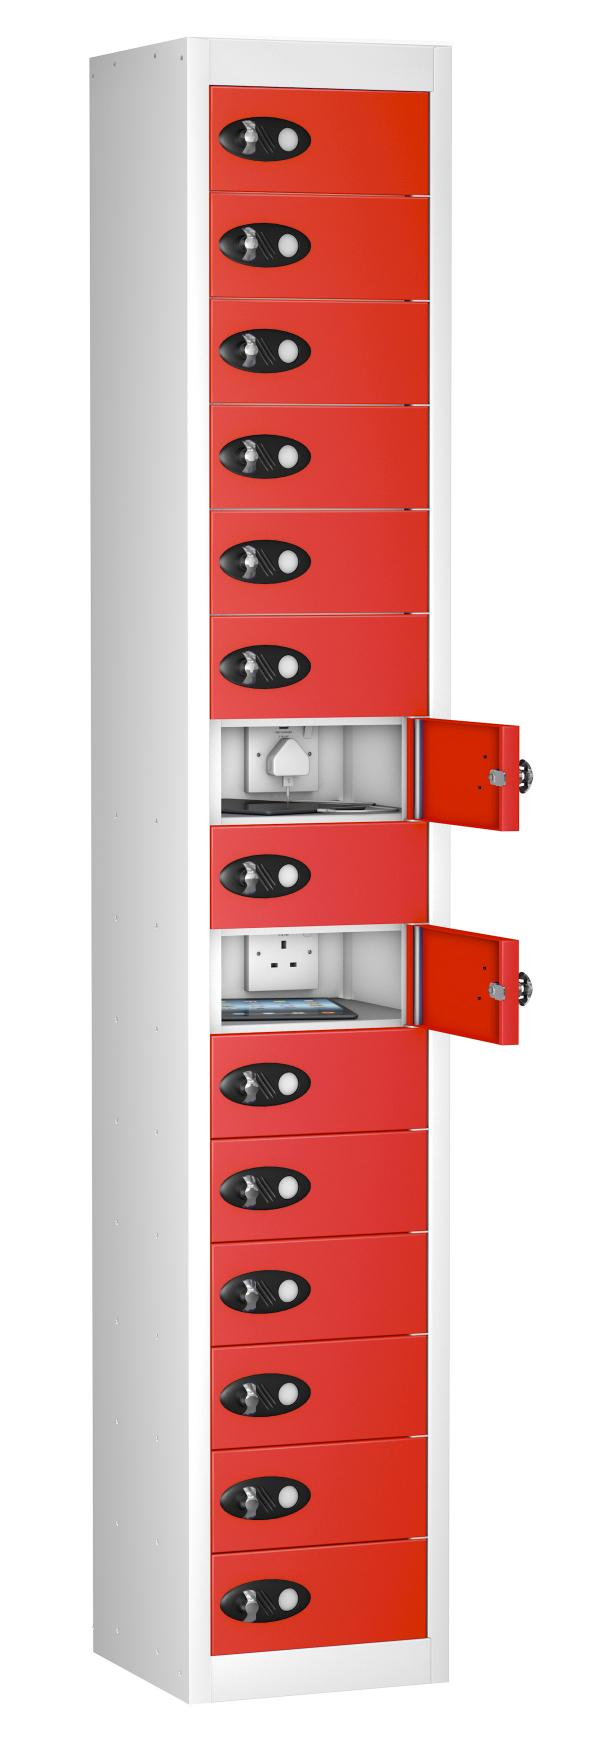 15 Compartment  Mobile Phone Charging Locker